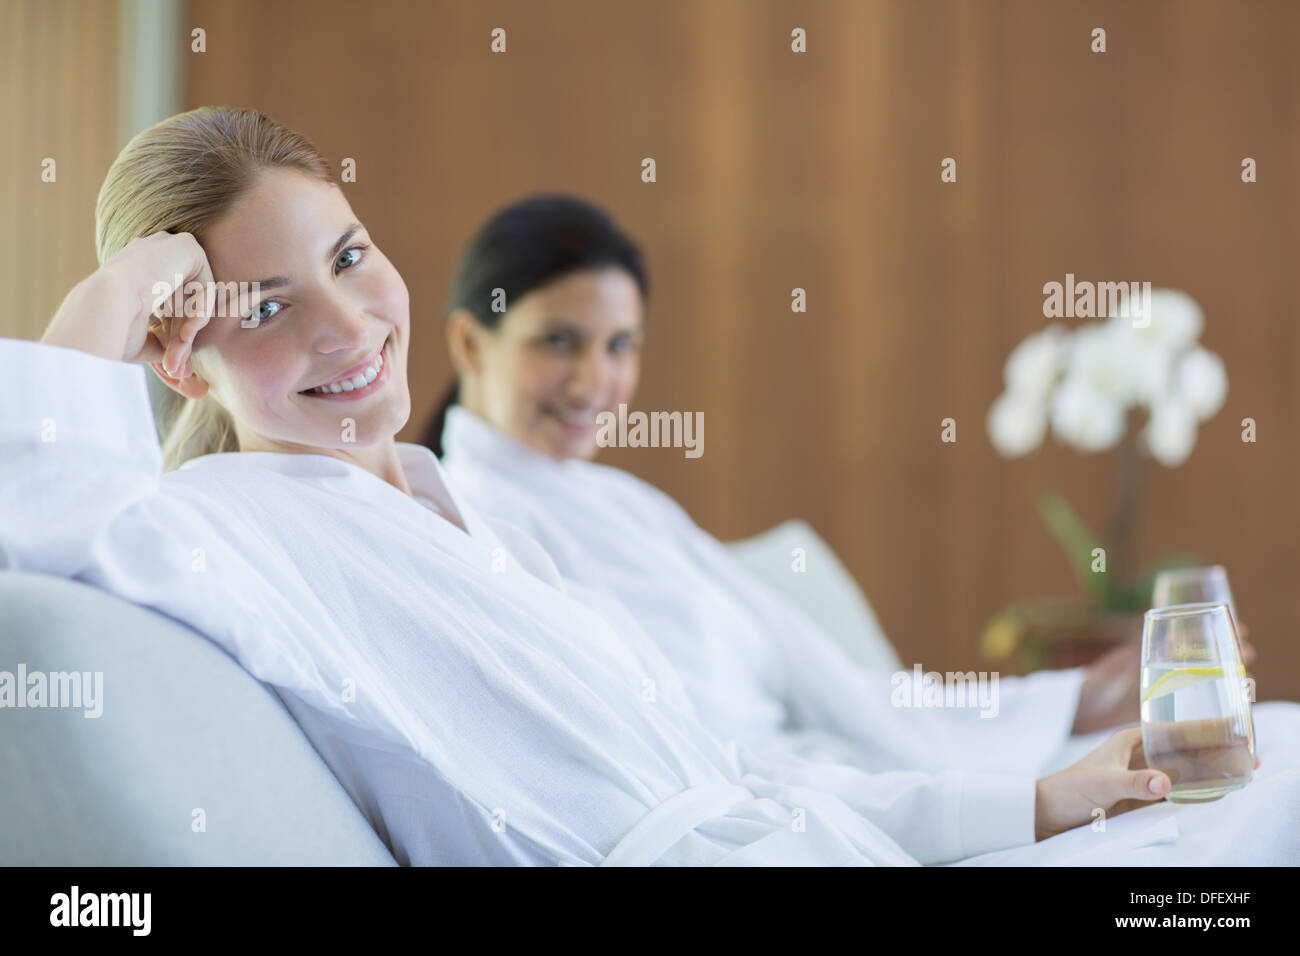 Women relaxing together in spa - Stock Image